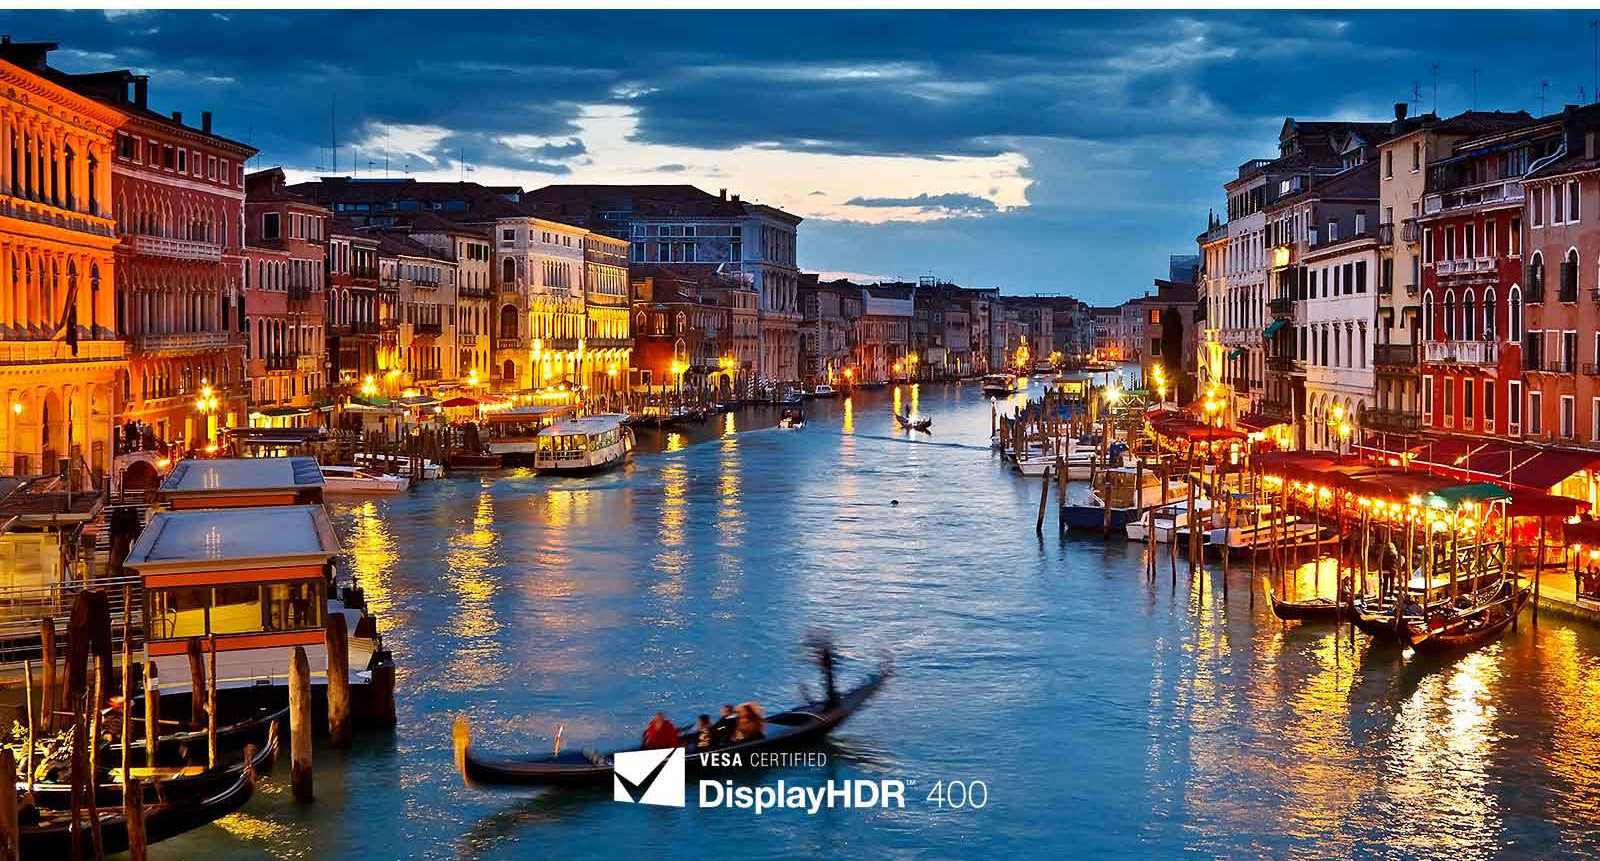 LG 27UL600 VESA Display HDR 400 Example Showing a Venice Canal at Night